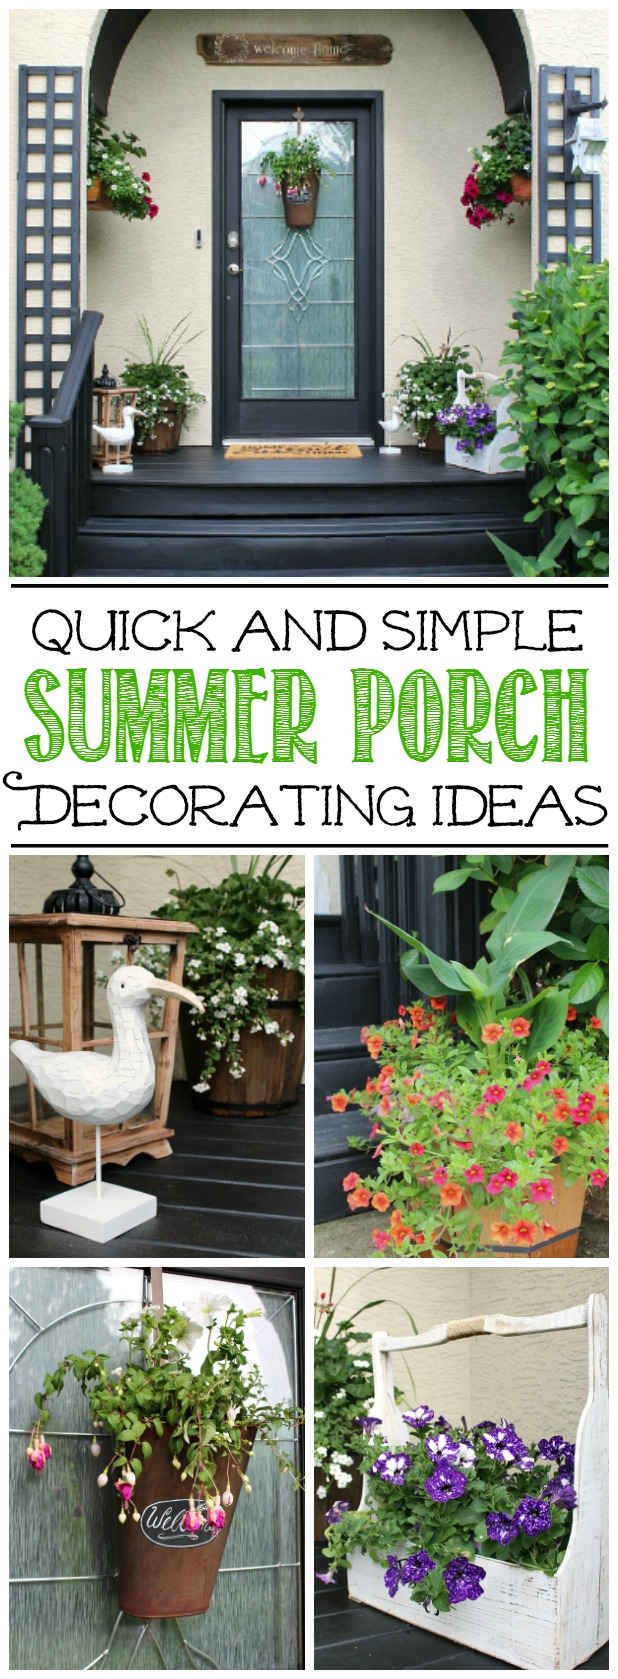 Summer front porch decorating ideas clean and scentsible Front veranda decorating ideas